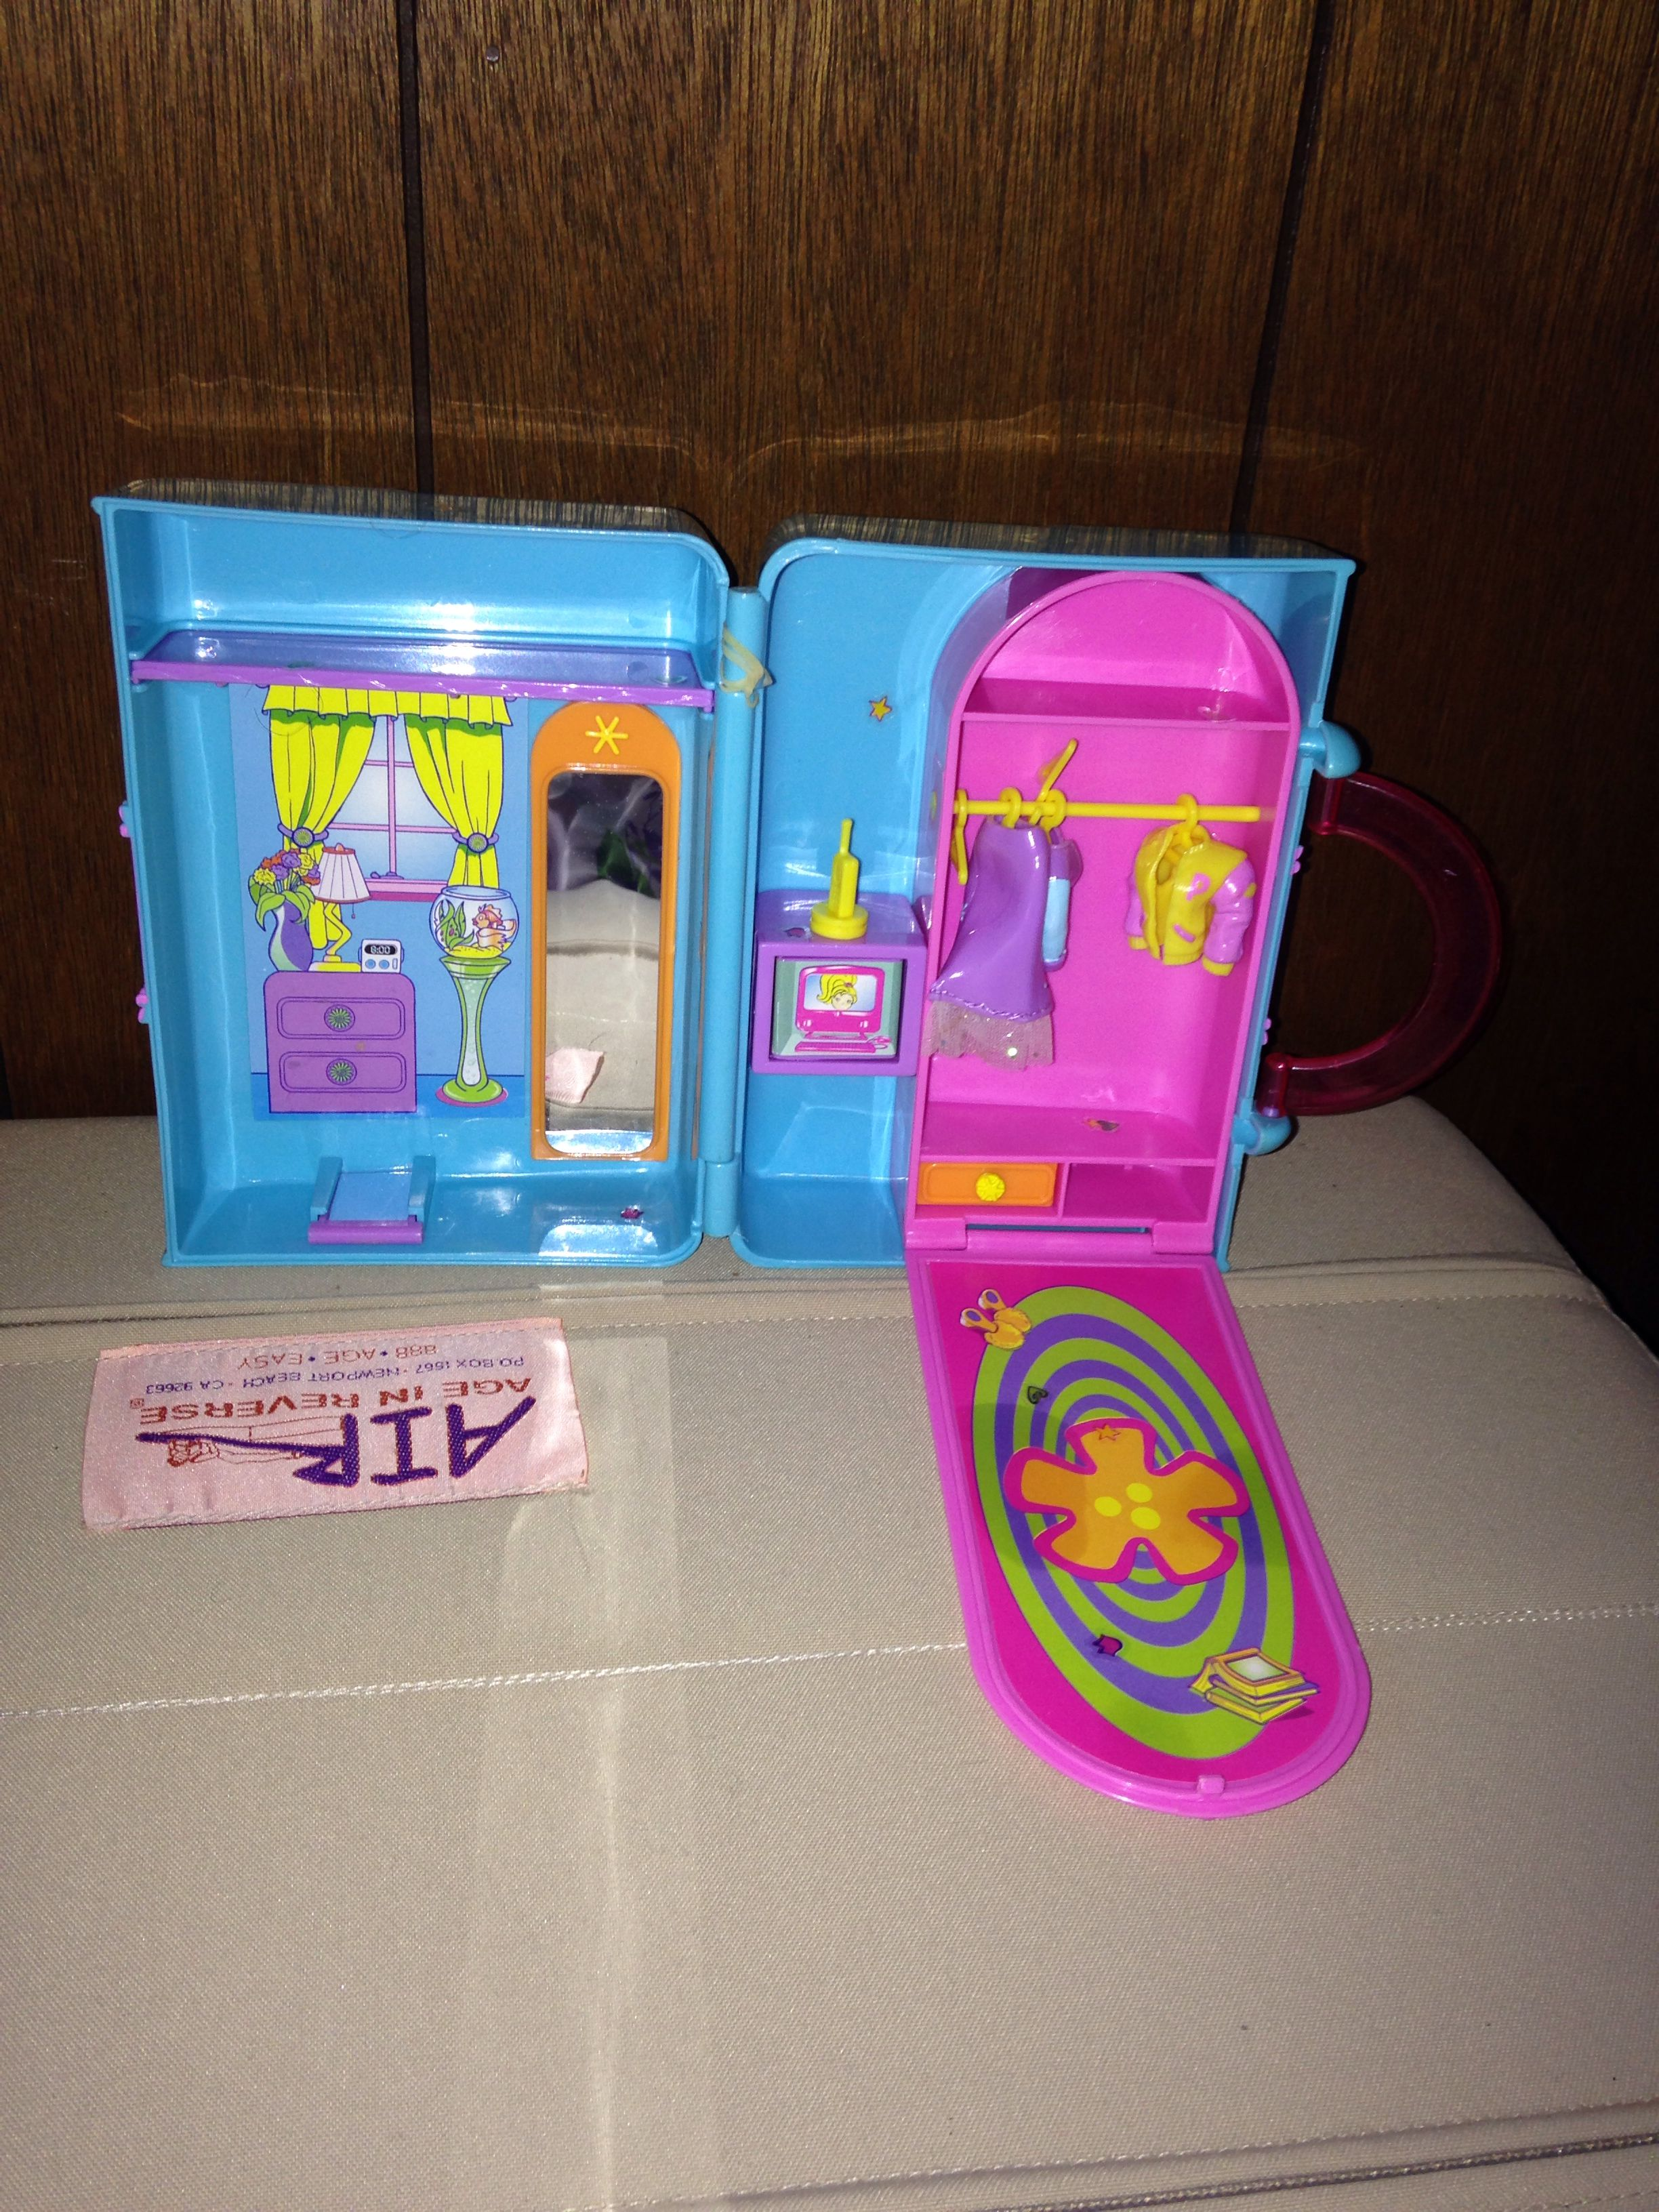 Polly Pockets For Sale: Pin By Janette.M On The Good Old Days